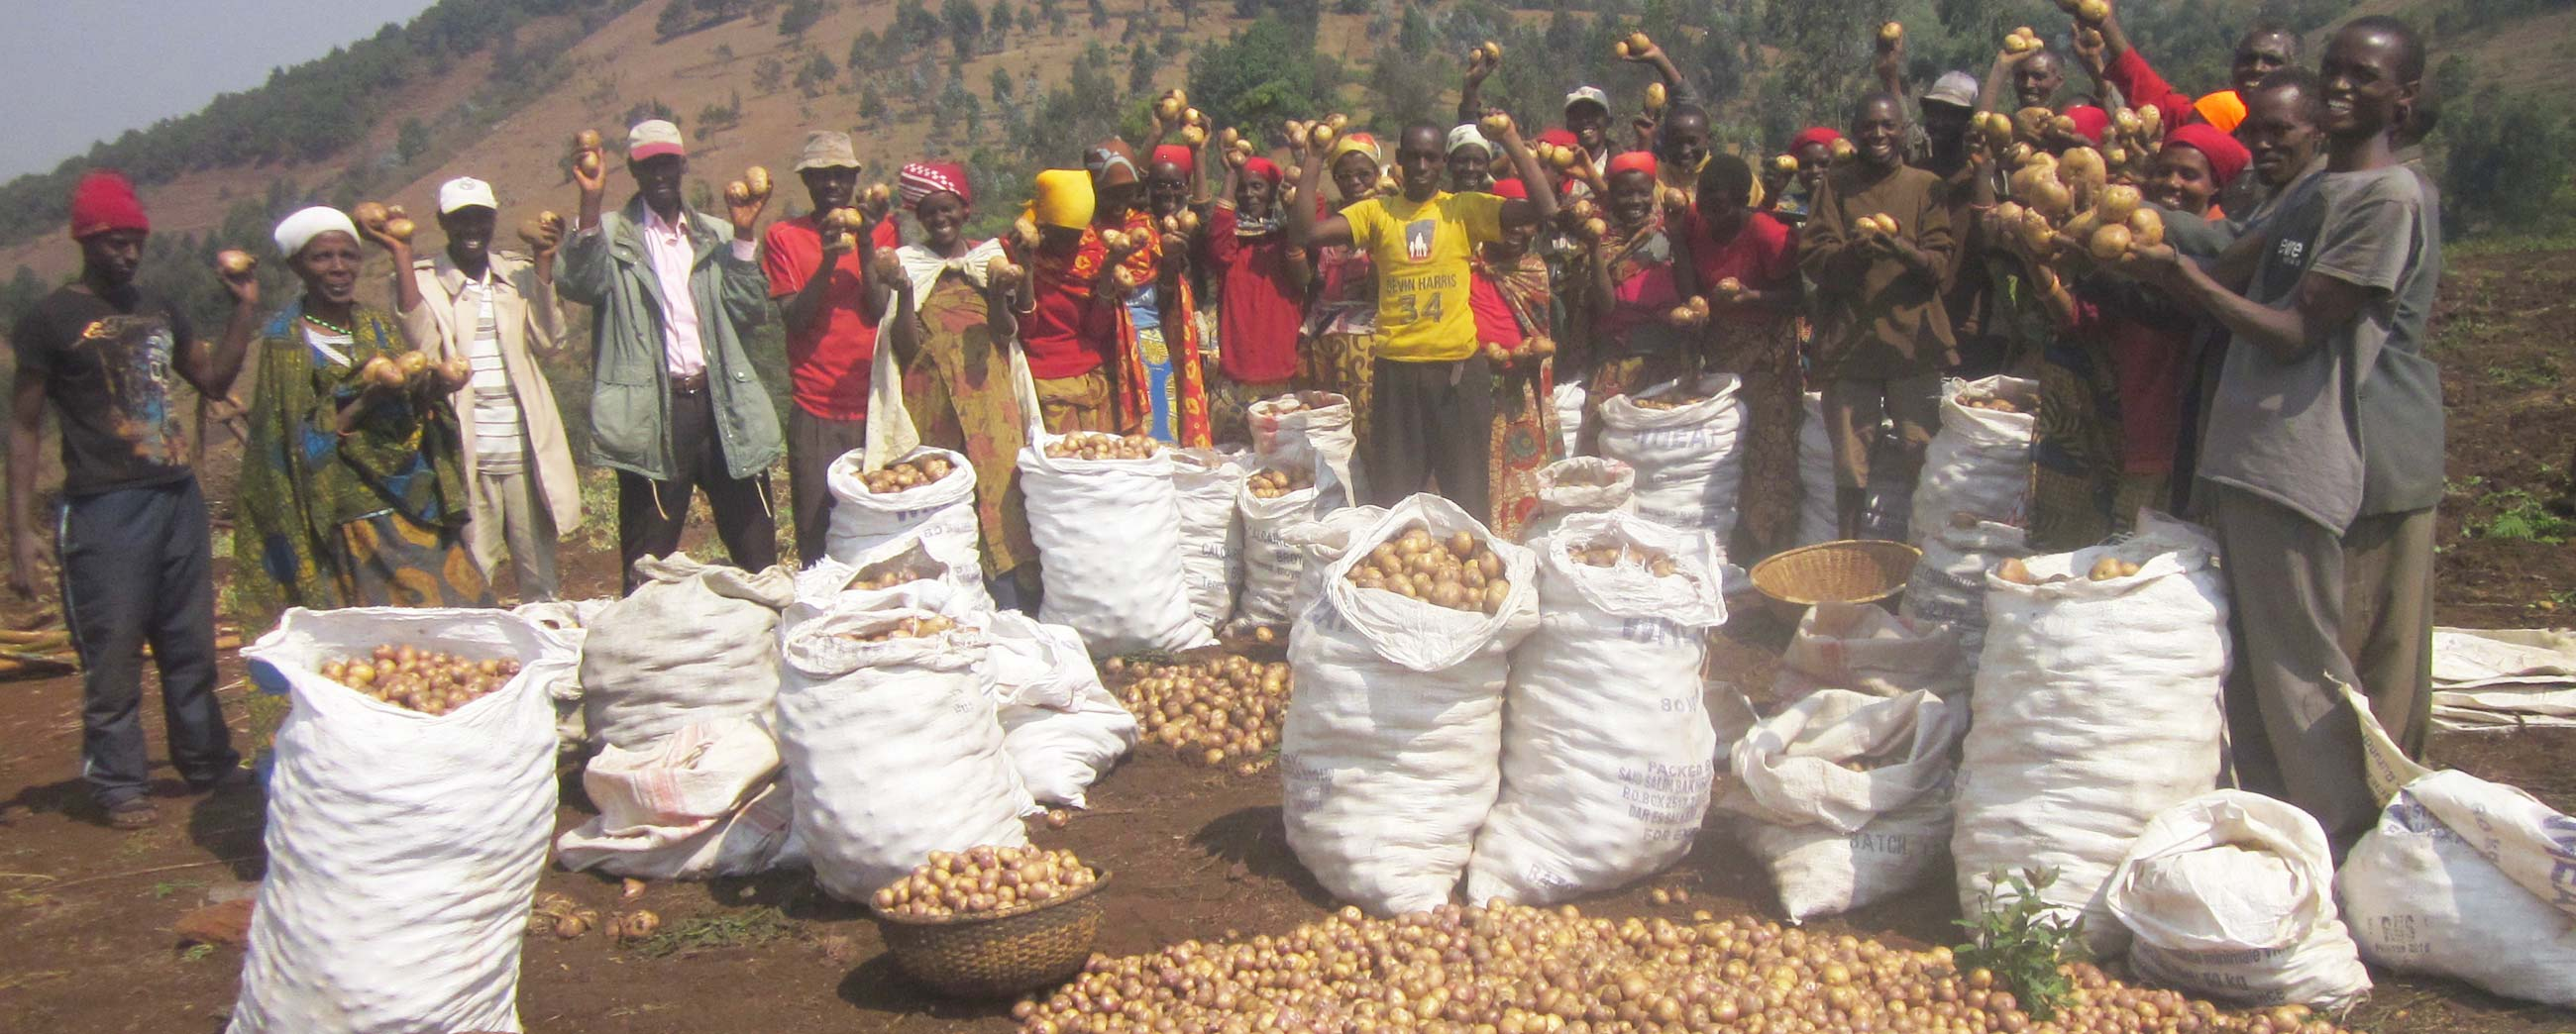 Agriculture in Burundi - Wings of Hope for Africa Foundation.